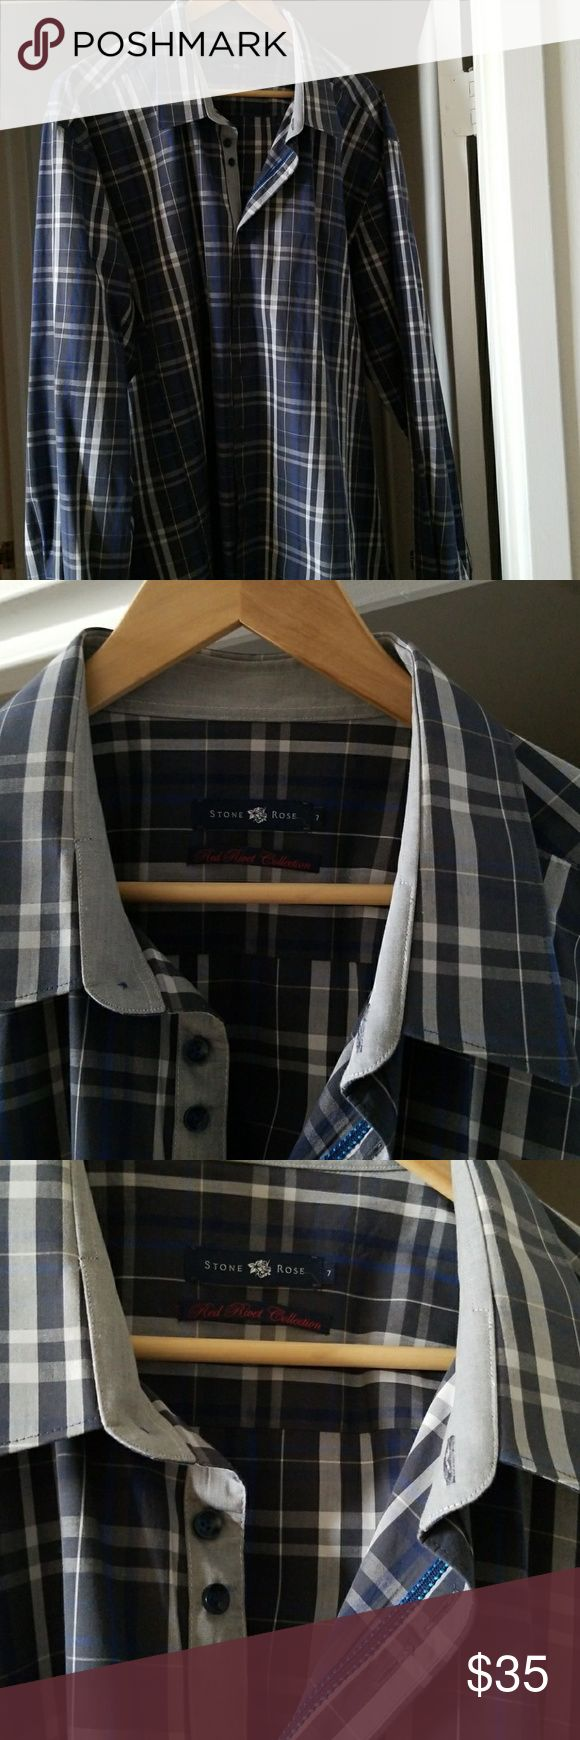 Stone Rose Men's Navy Plaid Knit Long Sleeve Shirt Great shirt for night out,  like new, worn 1-2 times. Nice detail, XL. Stone Rose Shirts Casual Button Down Shirts